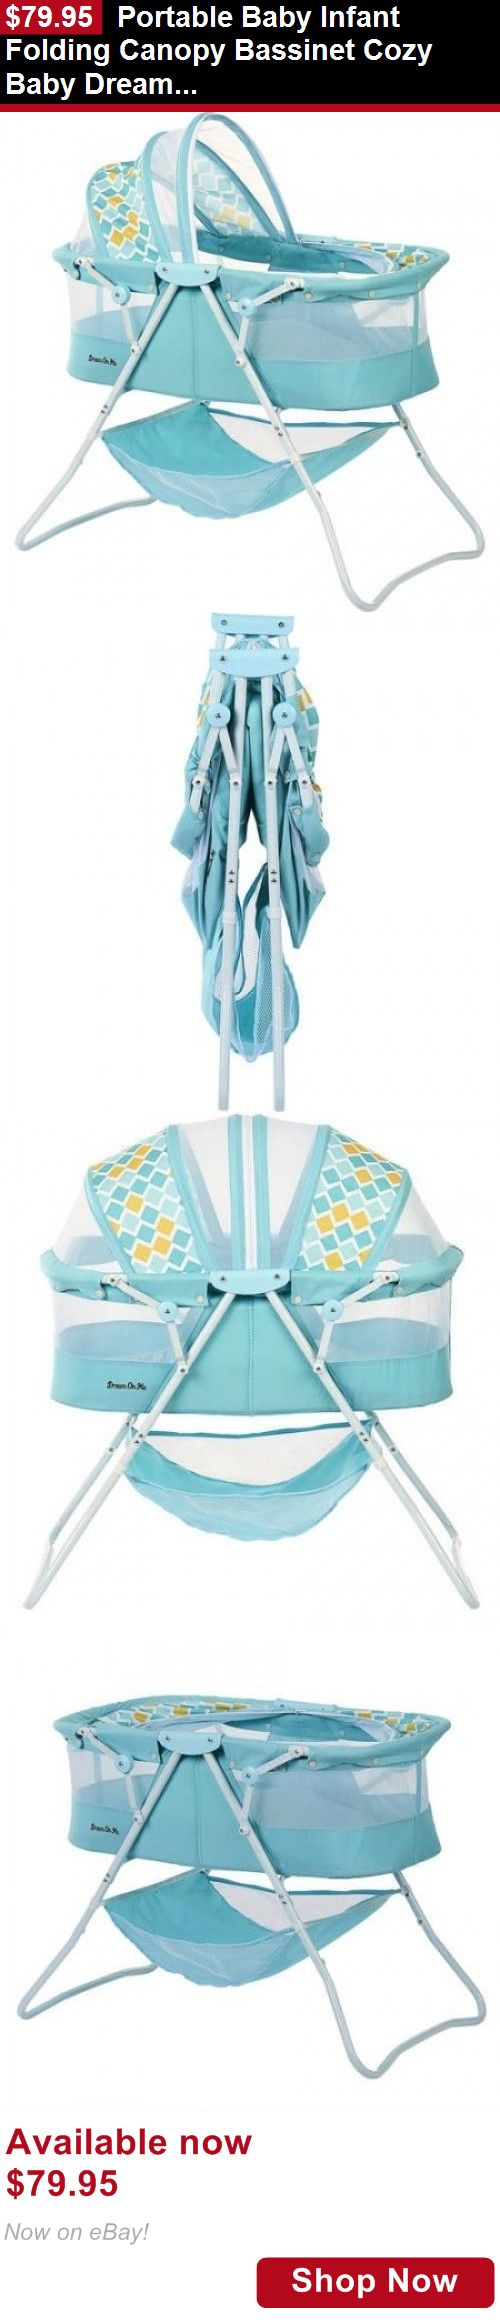 Bassinets And Cradles: Portable Baby Infant Folding Canopy Bassinet Cozy Baby Dream On Me Light Blue BUY IT NOW ONLY: $79.95